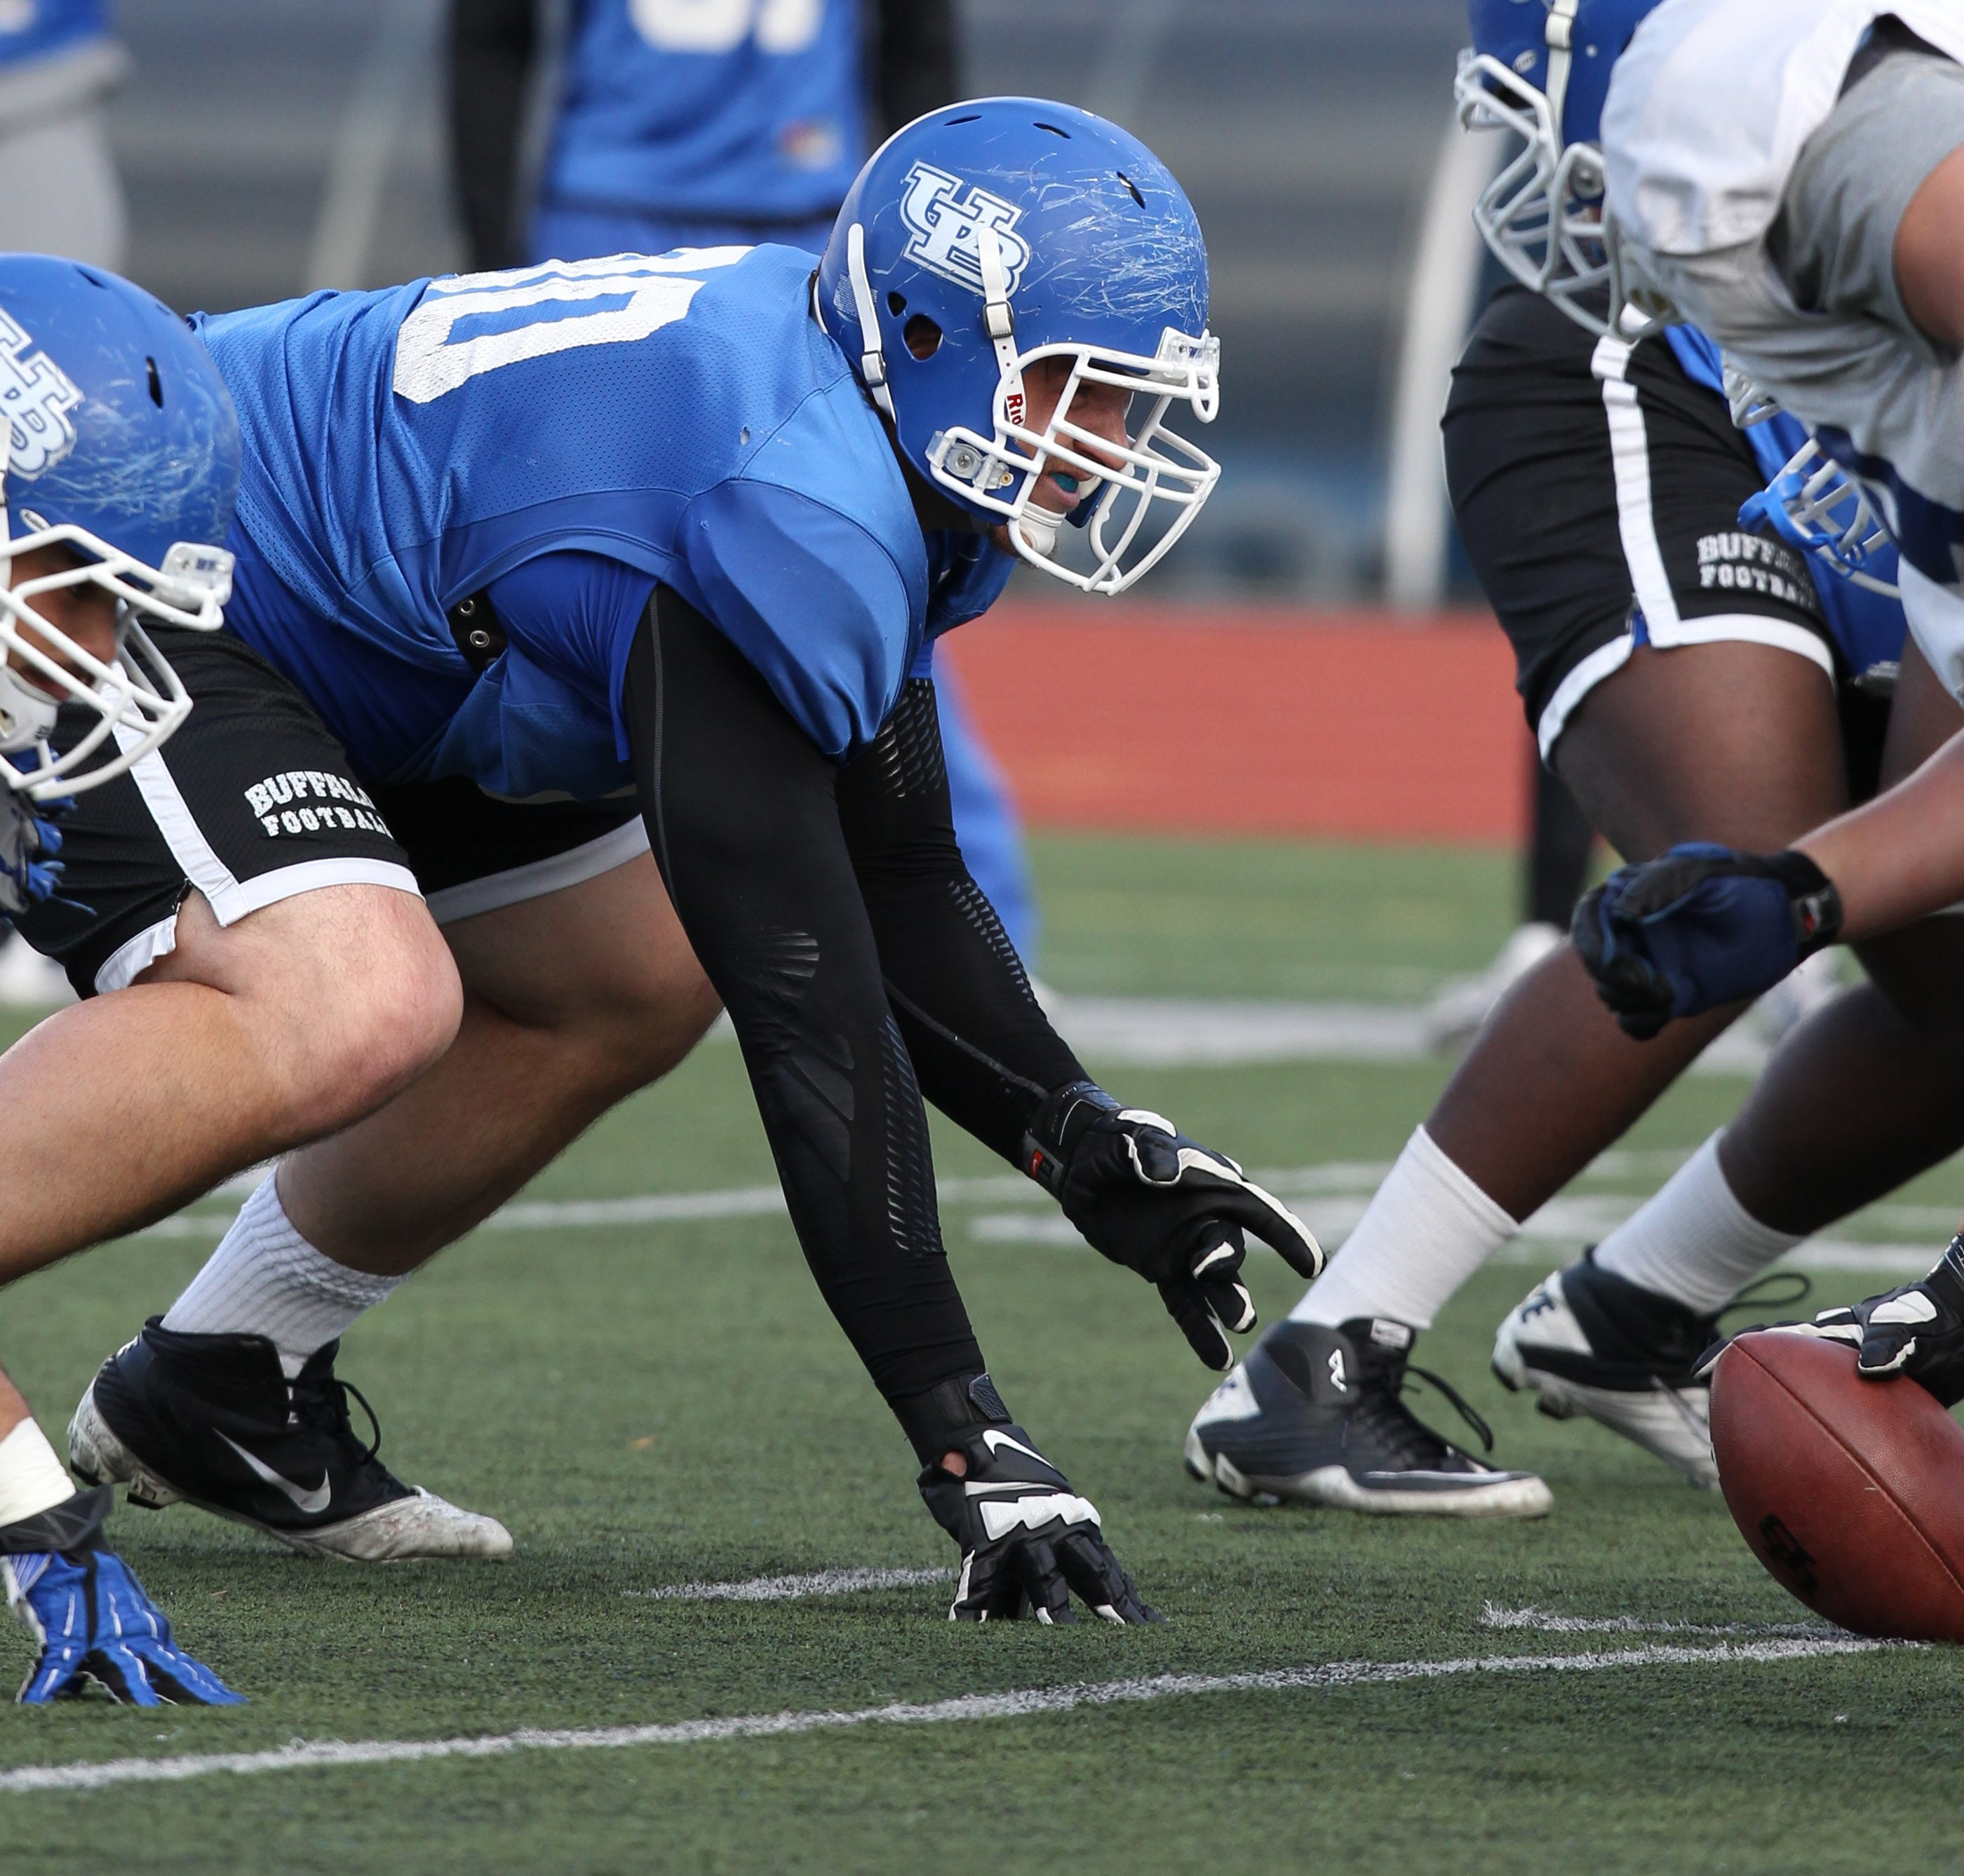 Nose tackle Kristjan Sokoli gained 80 pounds to play football at UB.